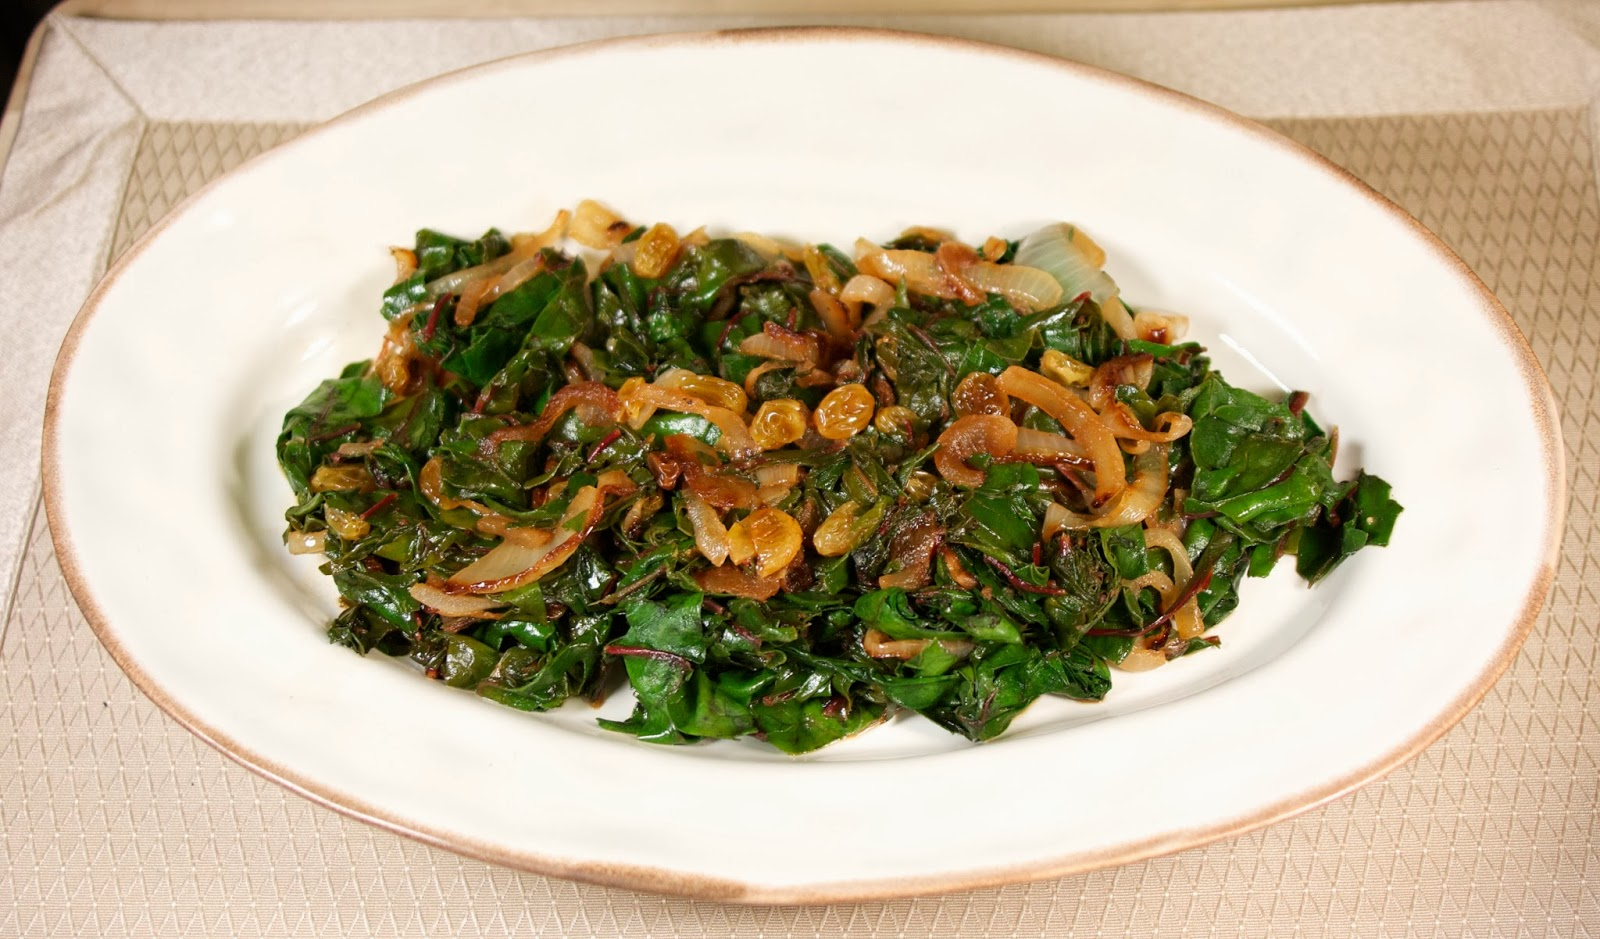 swiss chard w/ golden raisins: simplelivingeating.com